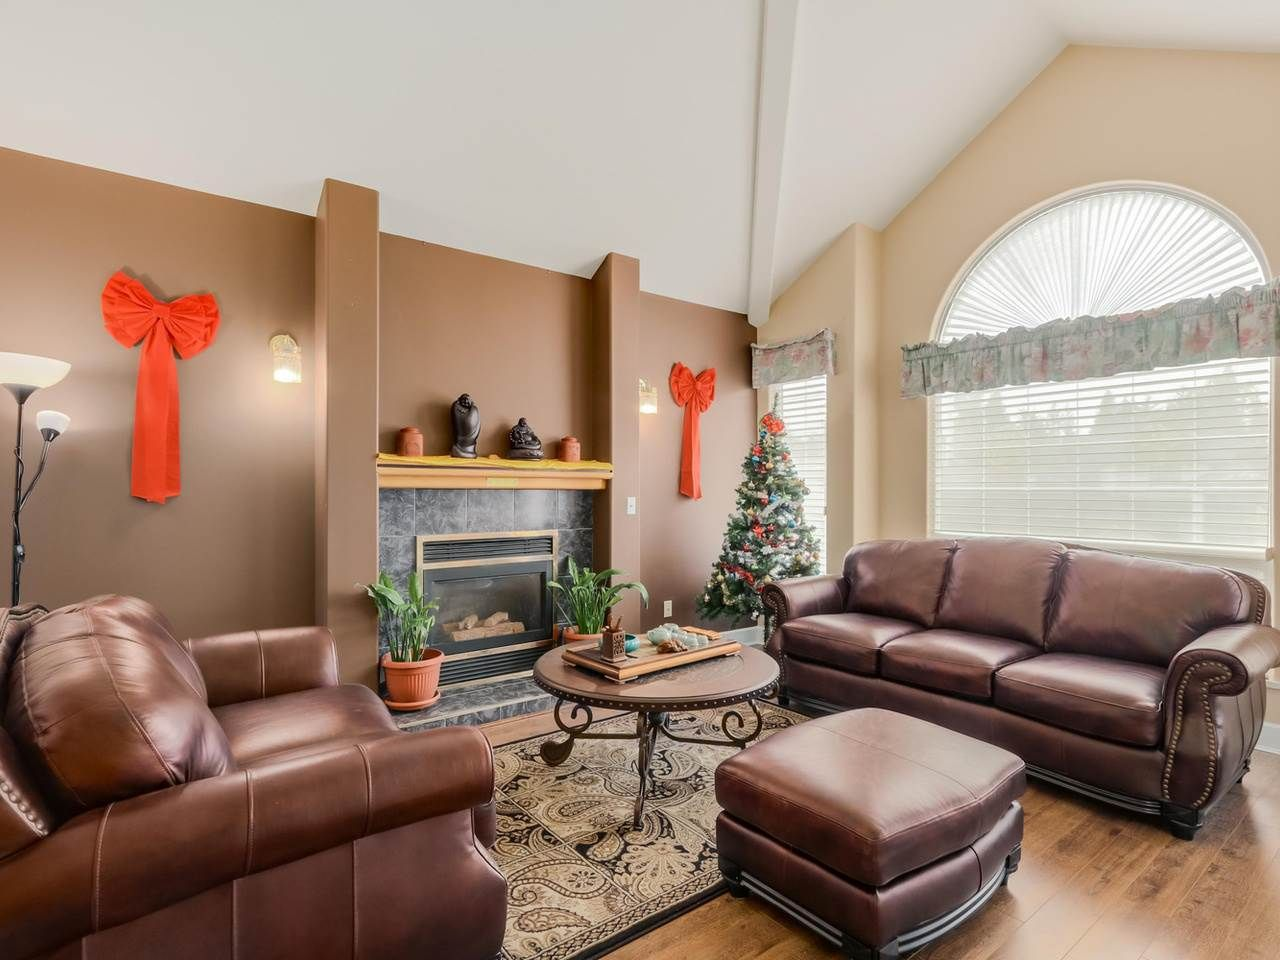 """Photo 4: Photos: 8238 149 Street in Surrey: Bear Creek Green Timbers House for sale in """"SHAUGHNESSY"""" : MLS®# R2078750"""